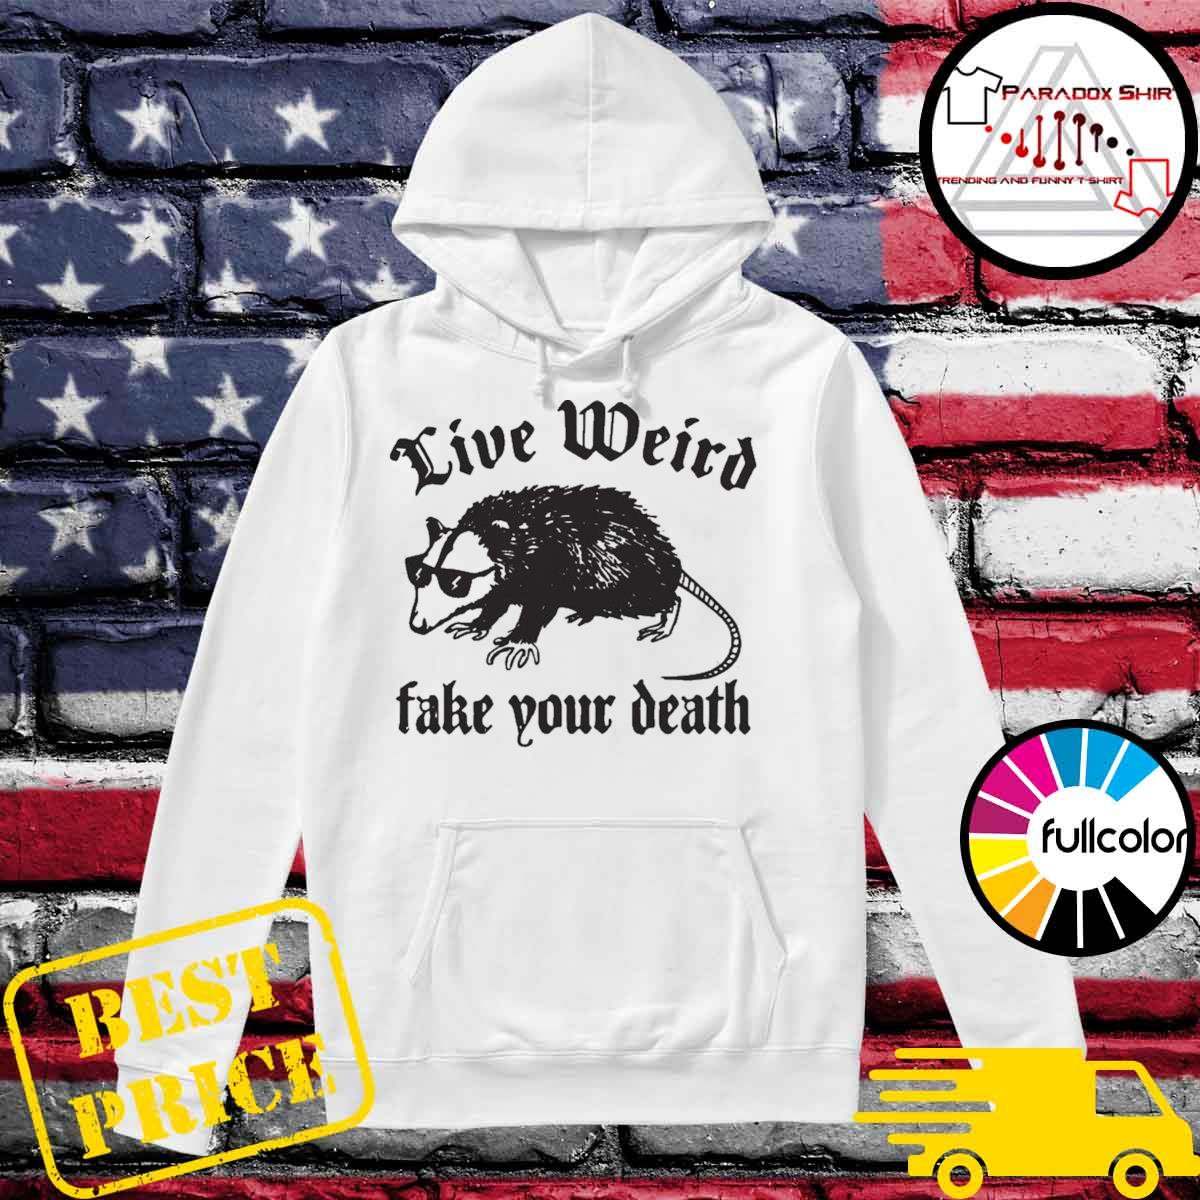 Opossum Live Weiro Fake Your Death rat Shirt Hoodie